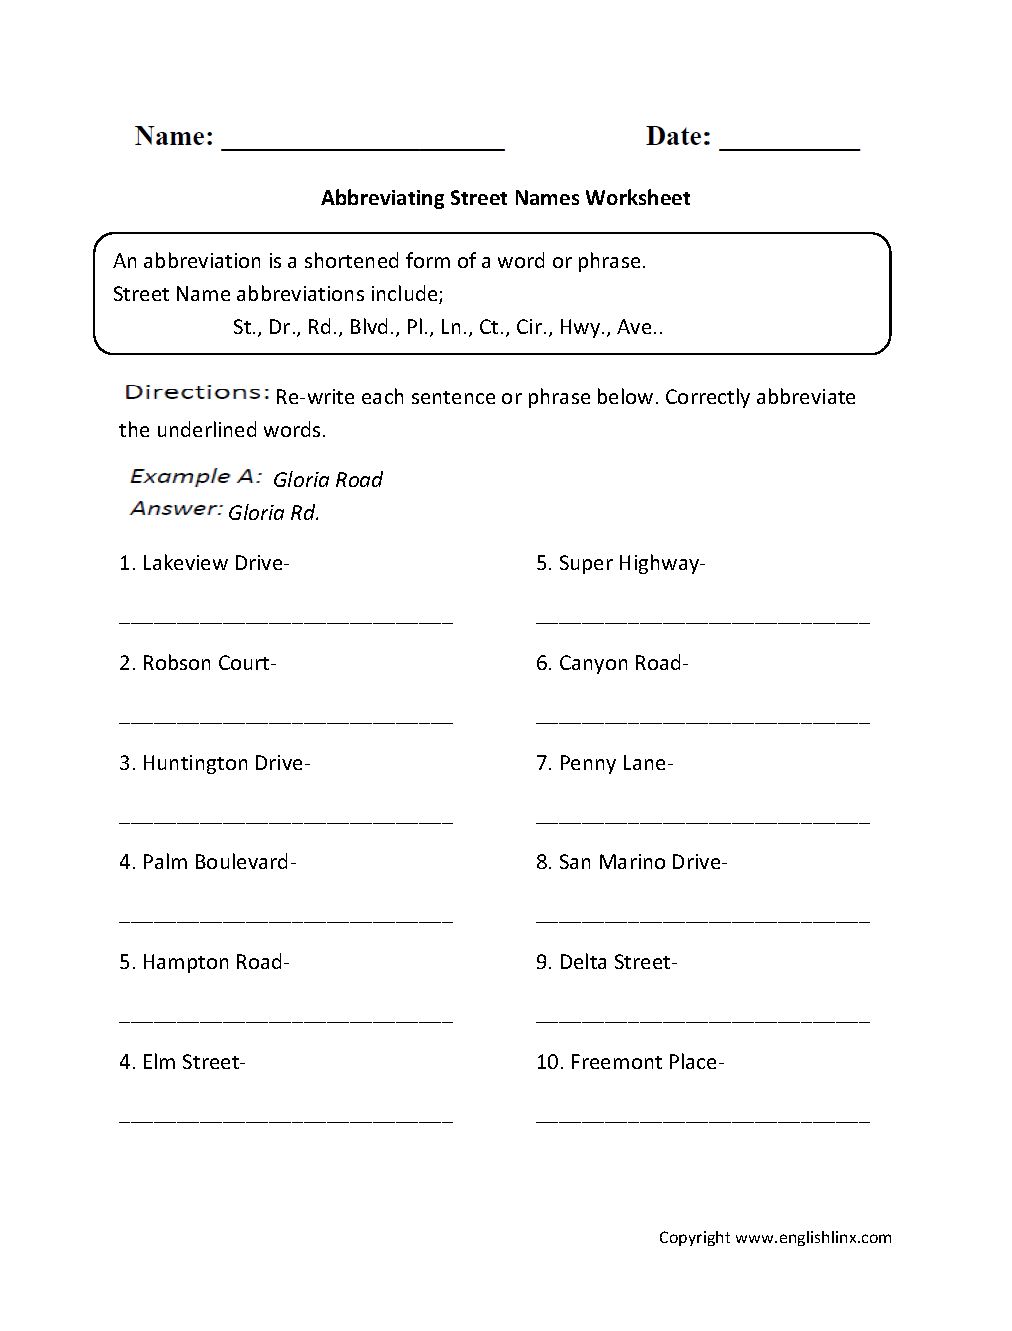 Abbreviating Street Names Worksheet